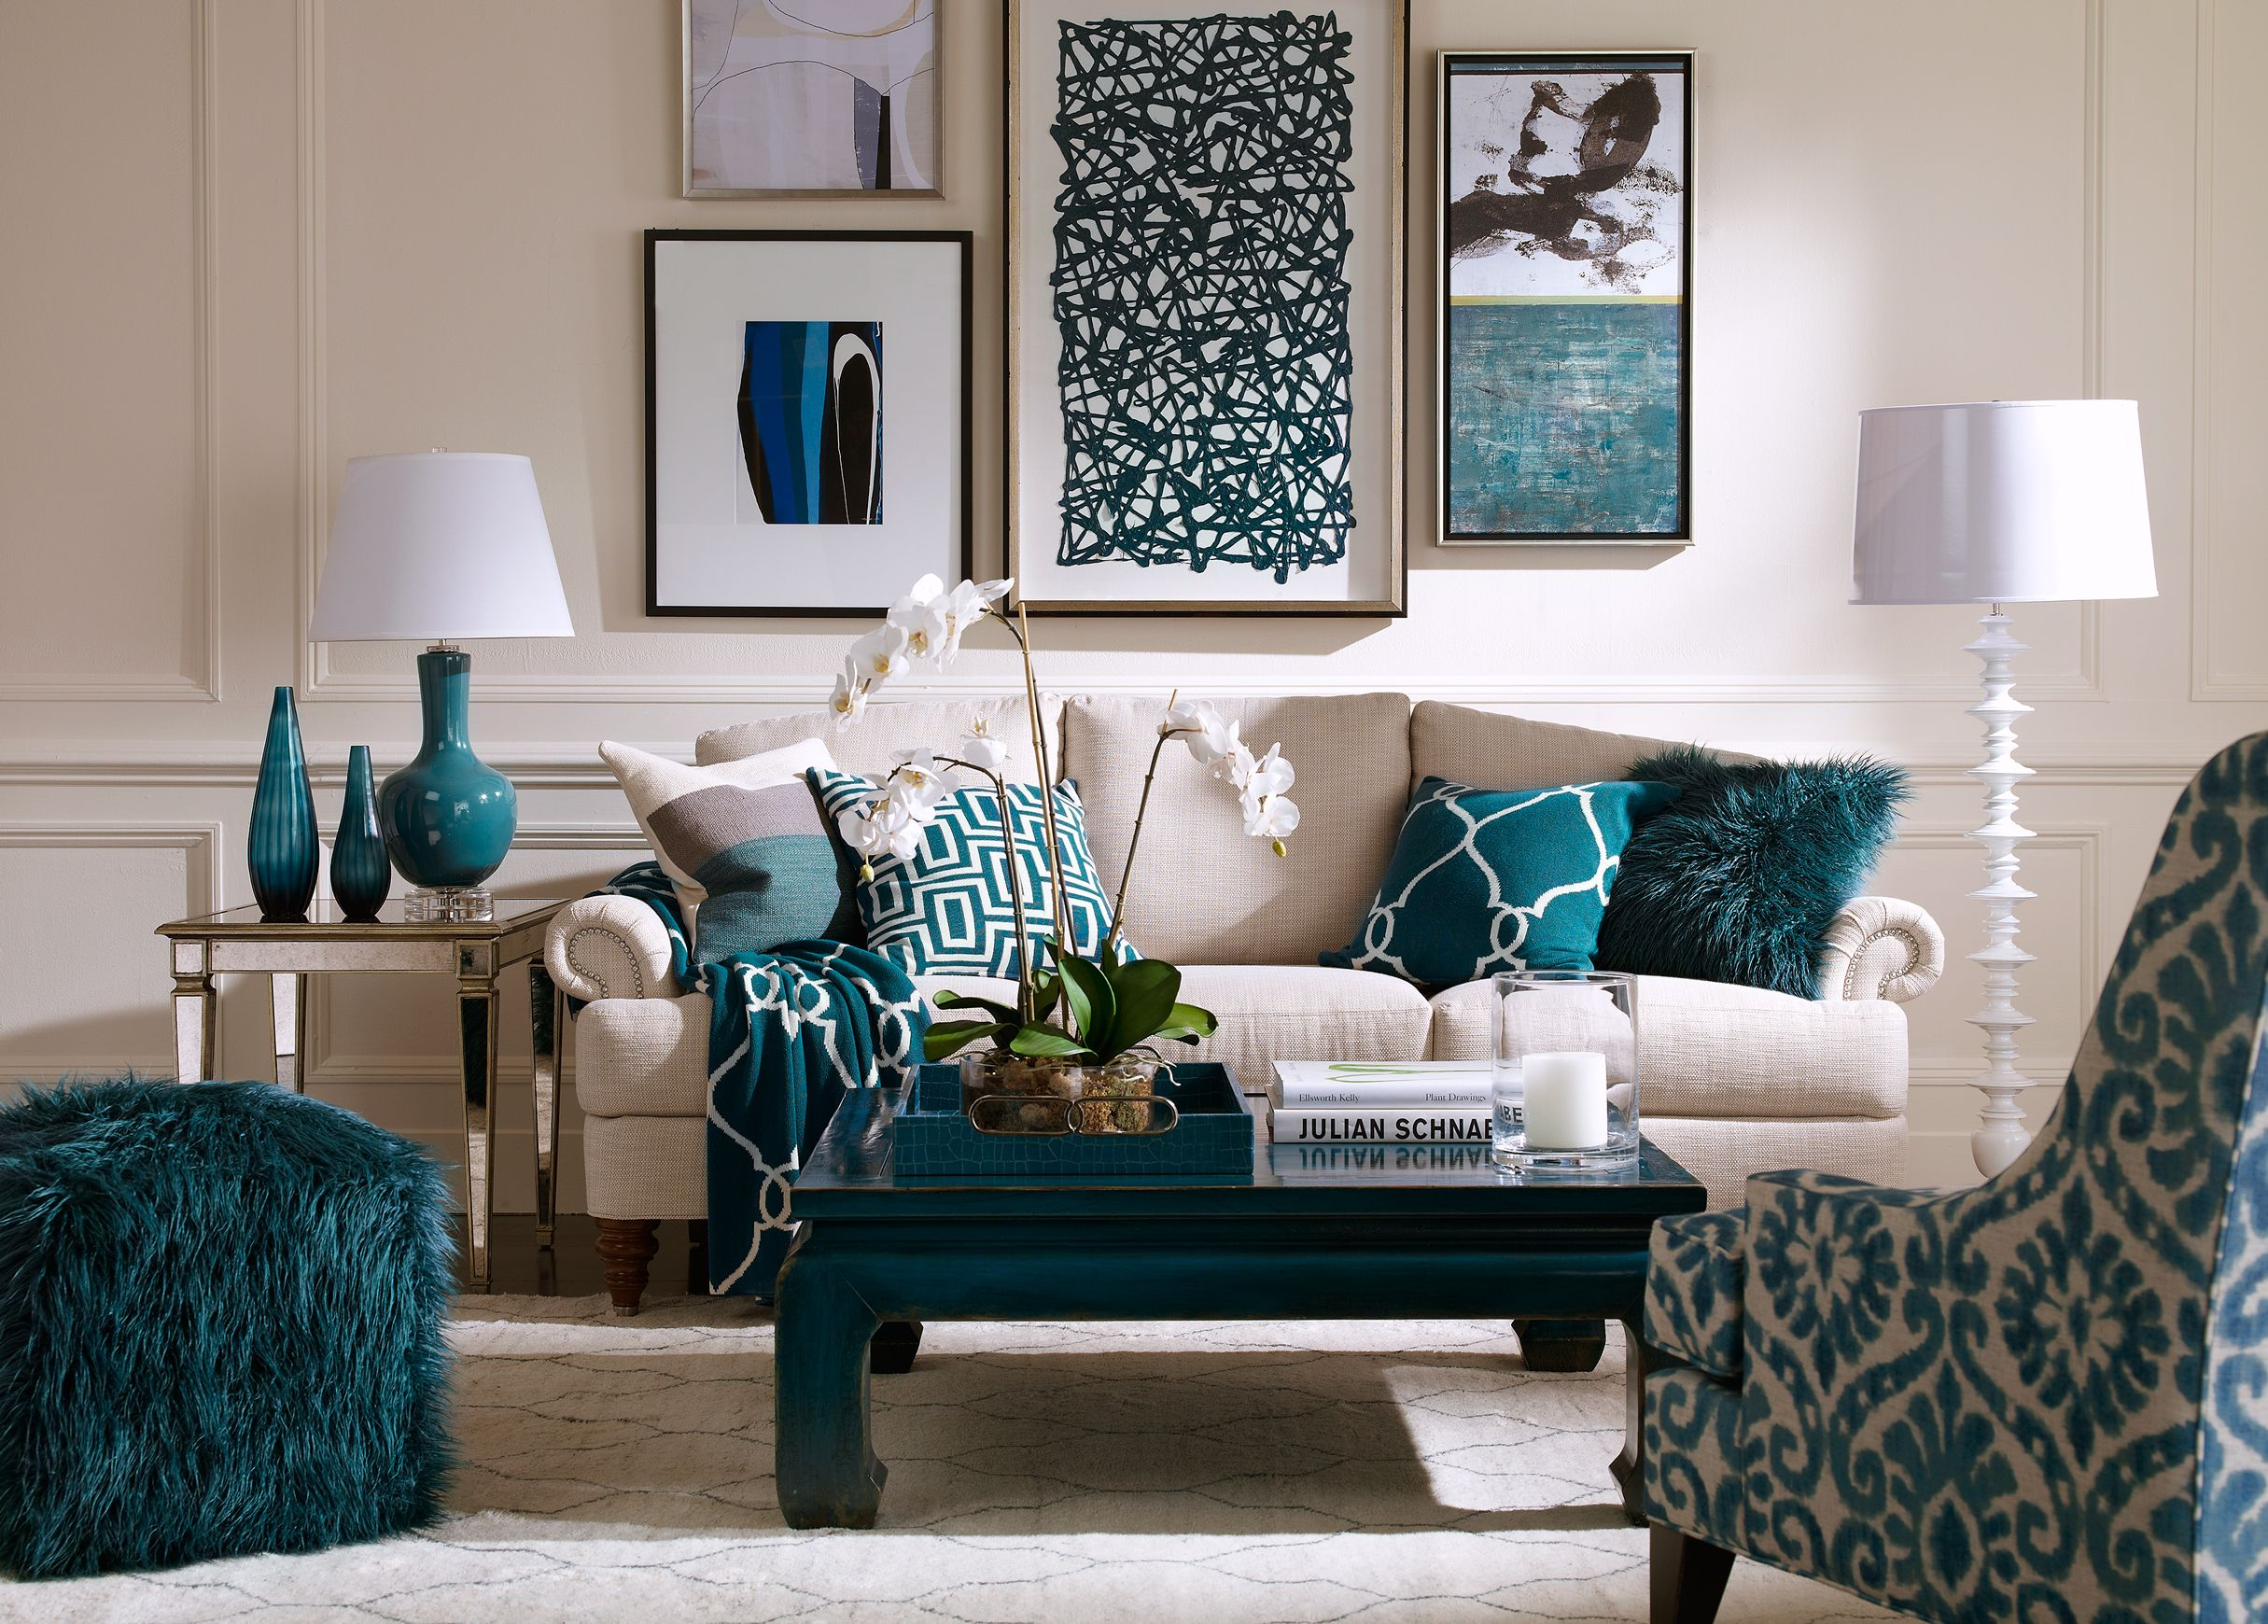 turquoise living room decorating ideas 15 Best Images About Turquoise Room Decorations | House ideas | Living room turquoise, Teal